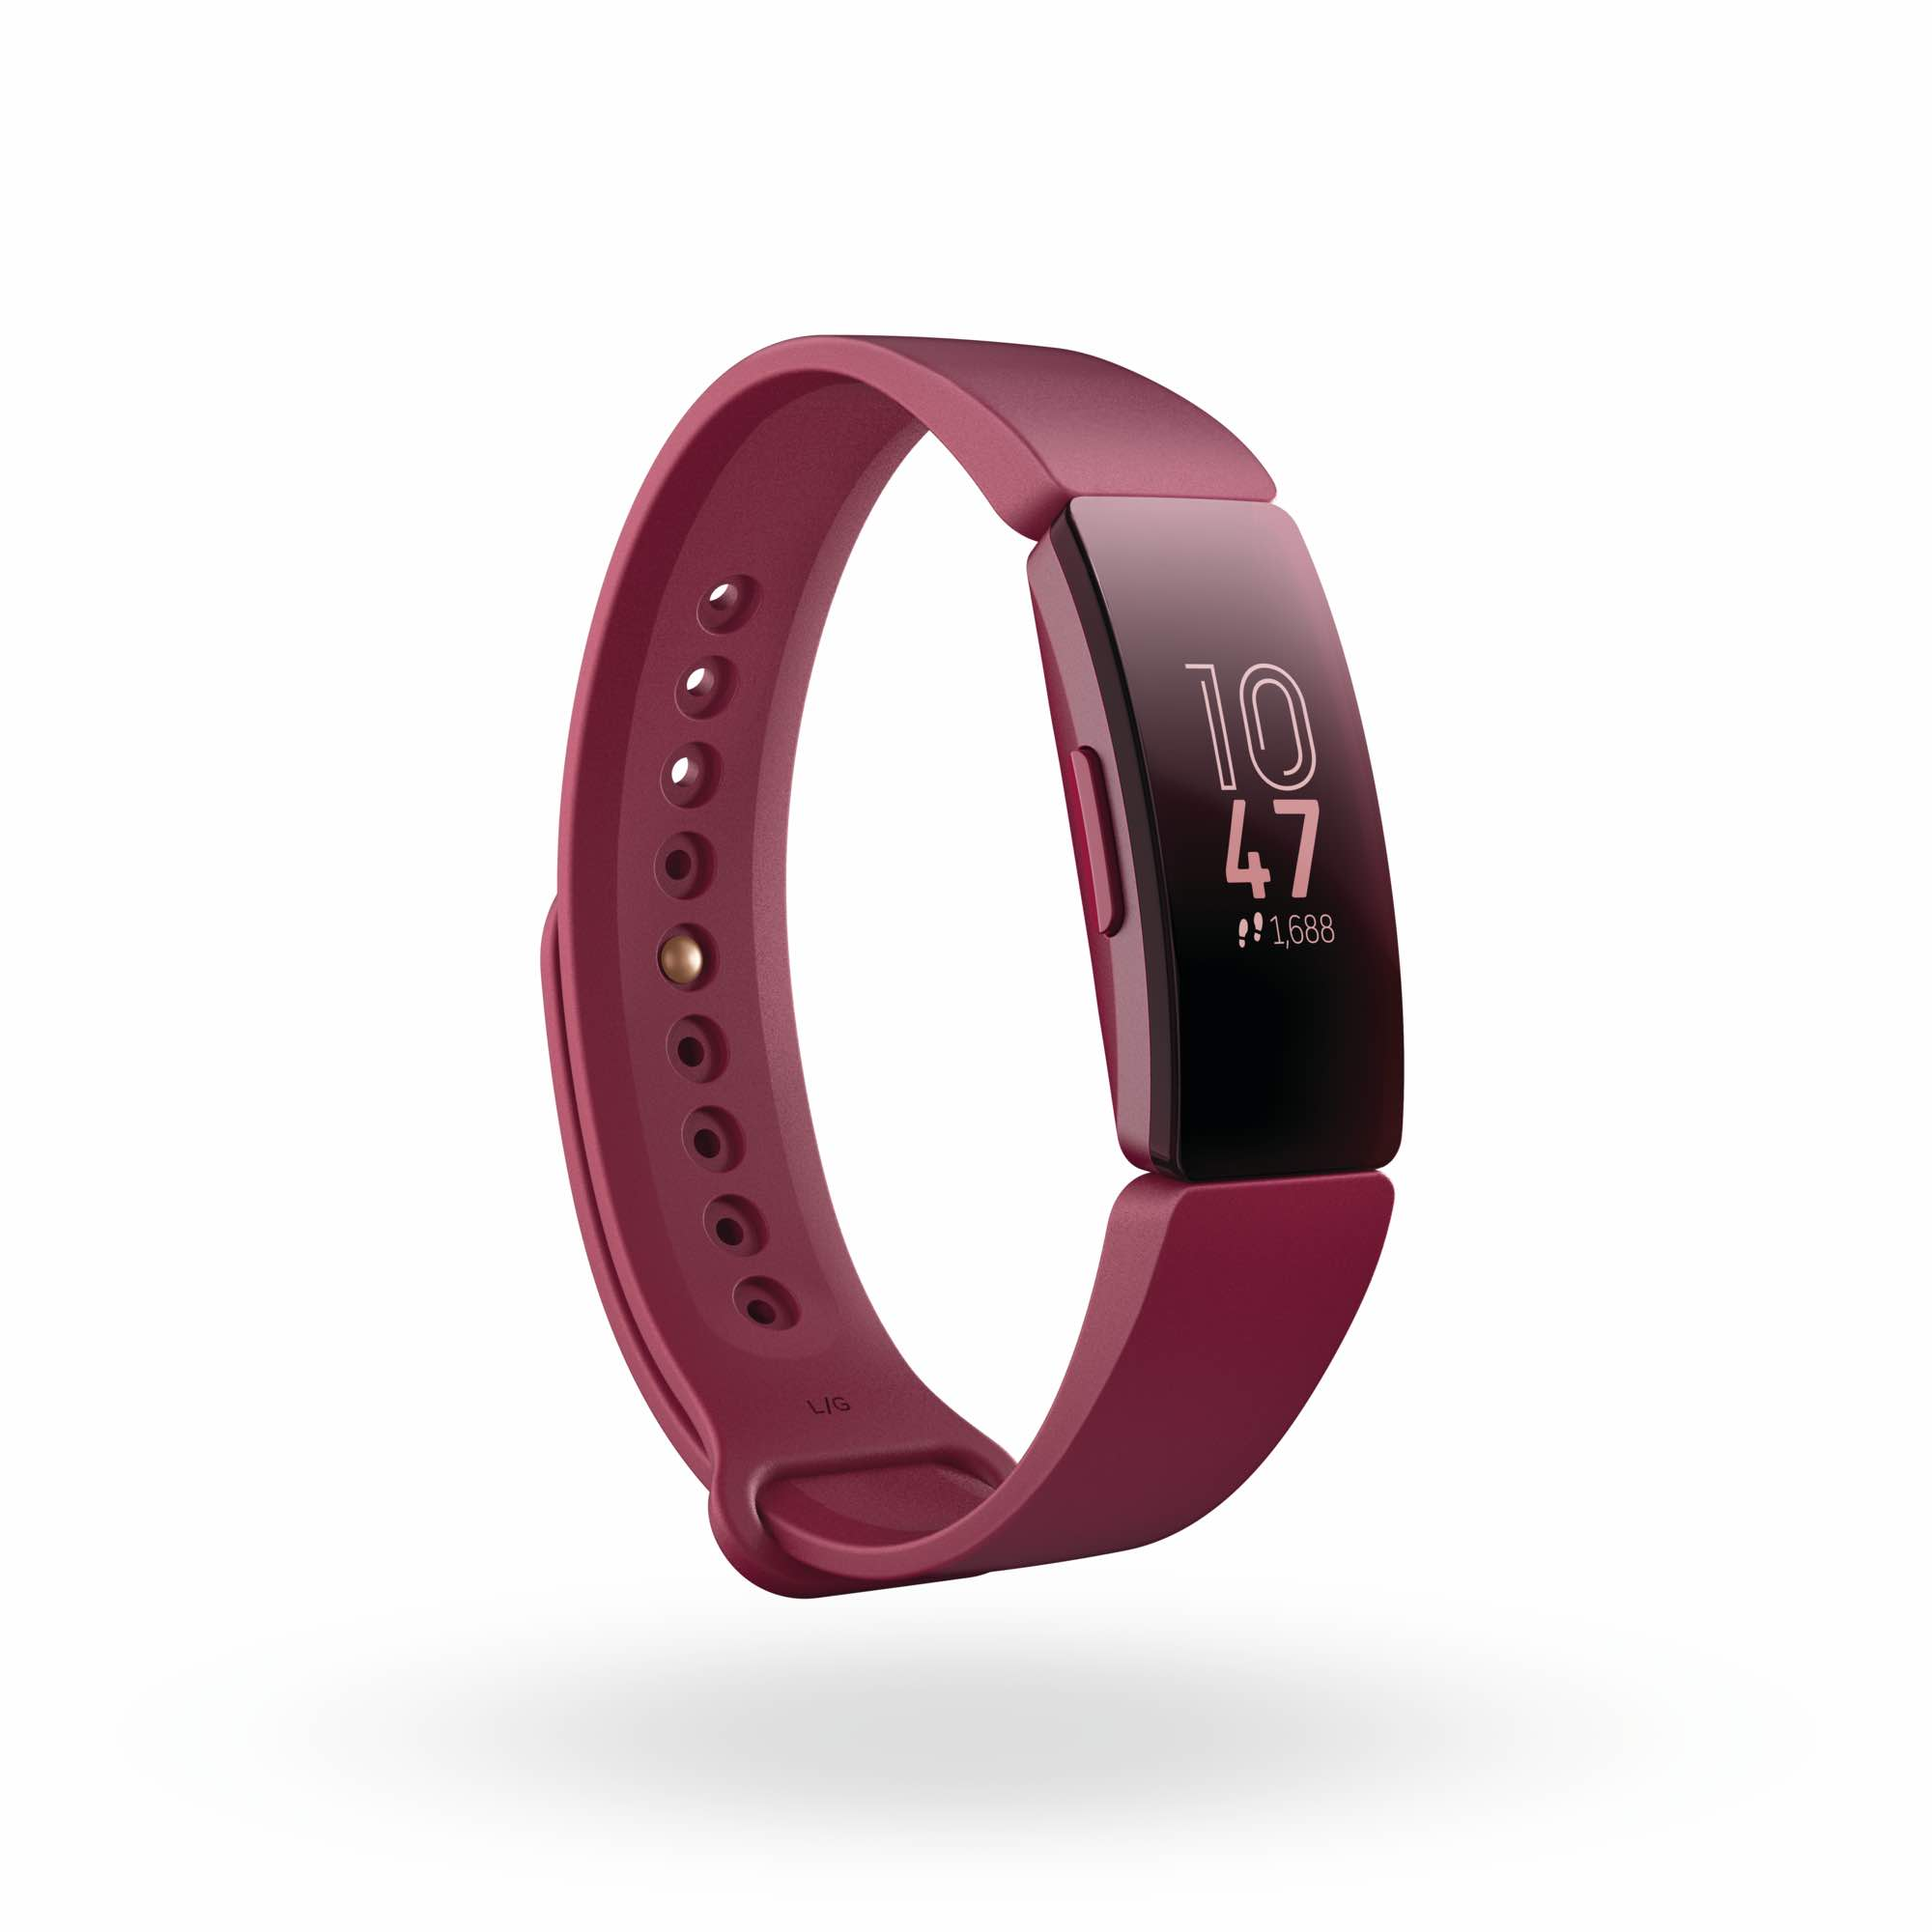 Wearable Steps Distance Activity Burned Calories Sleep Analysis Swim Fitbit Inspire